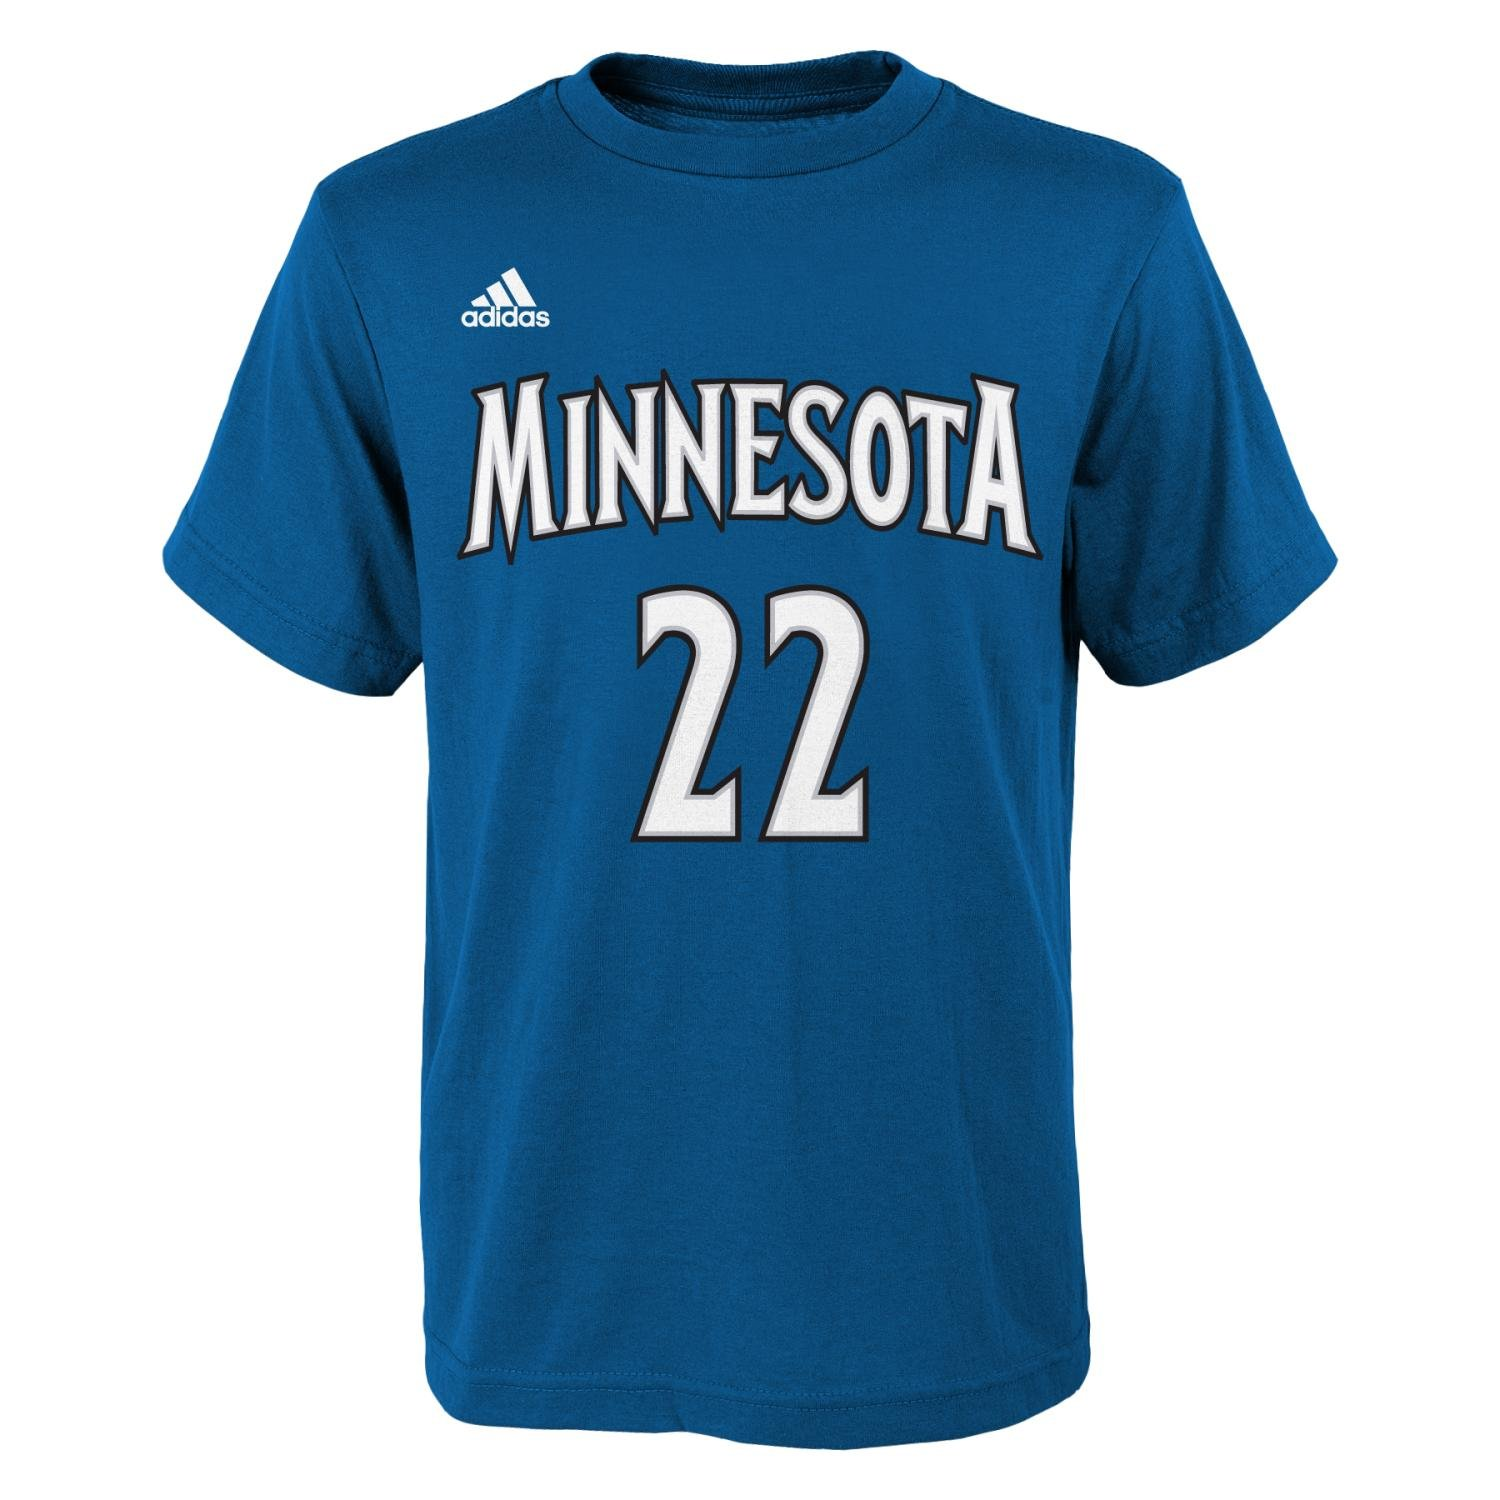 598d0145dab Amazon.com : Minnesota Timberwolves Adidas Andrew Wiggins T Shirt Youth  Boys 8-20 (Youth XL 18) : Sports & Outdoors